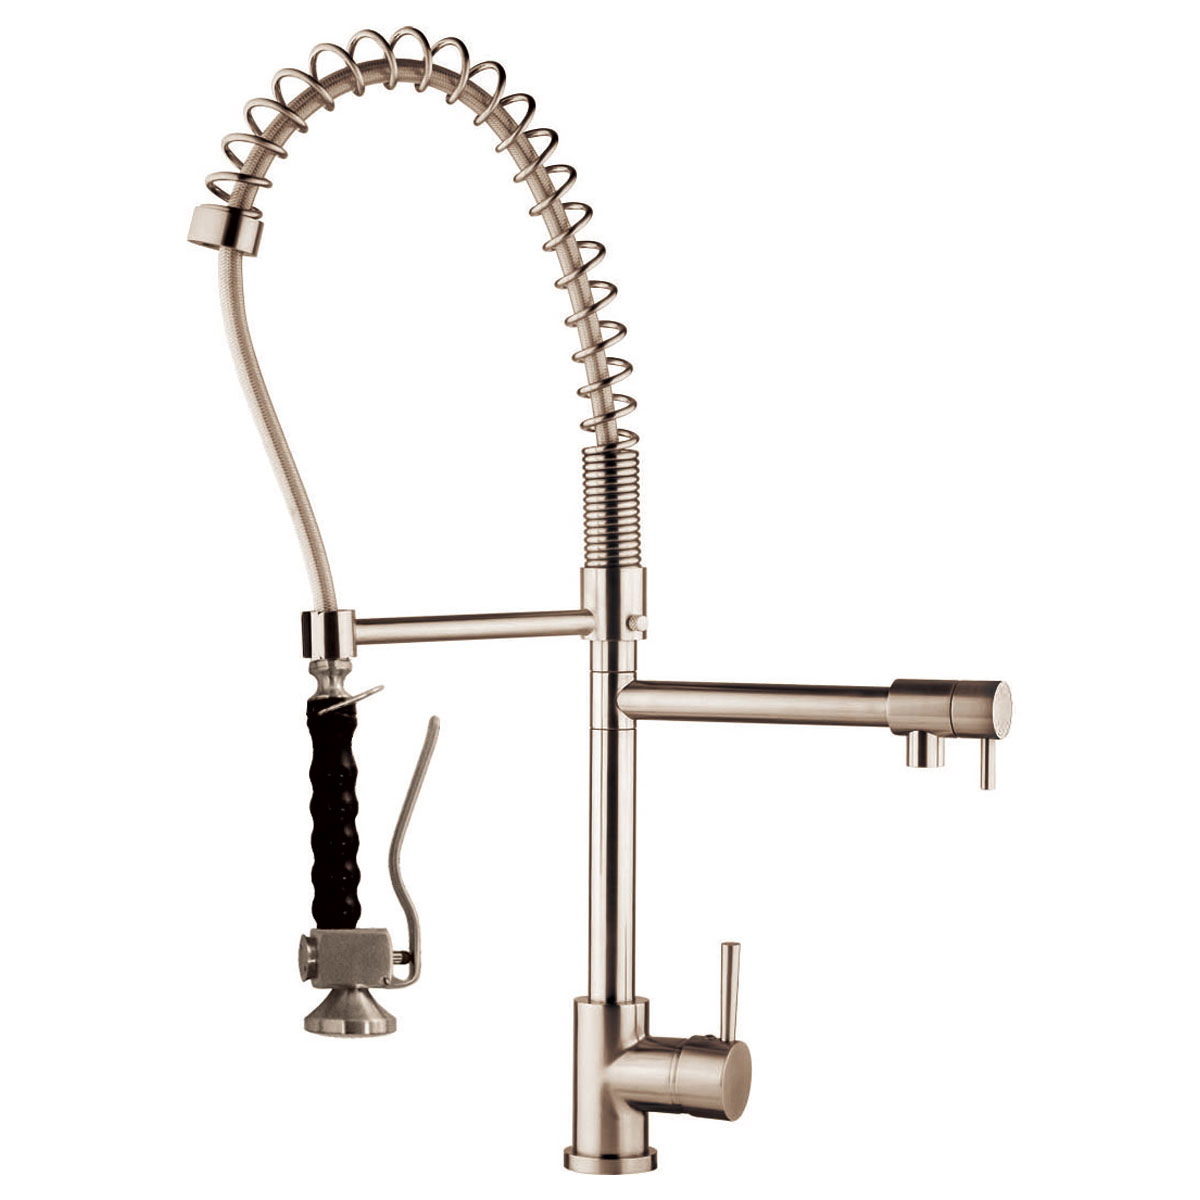 LessCare LK15B Spring-Type Pull-Out Kitchen Faucet in Brushed Nickel ...